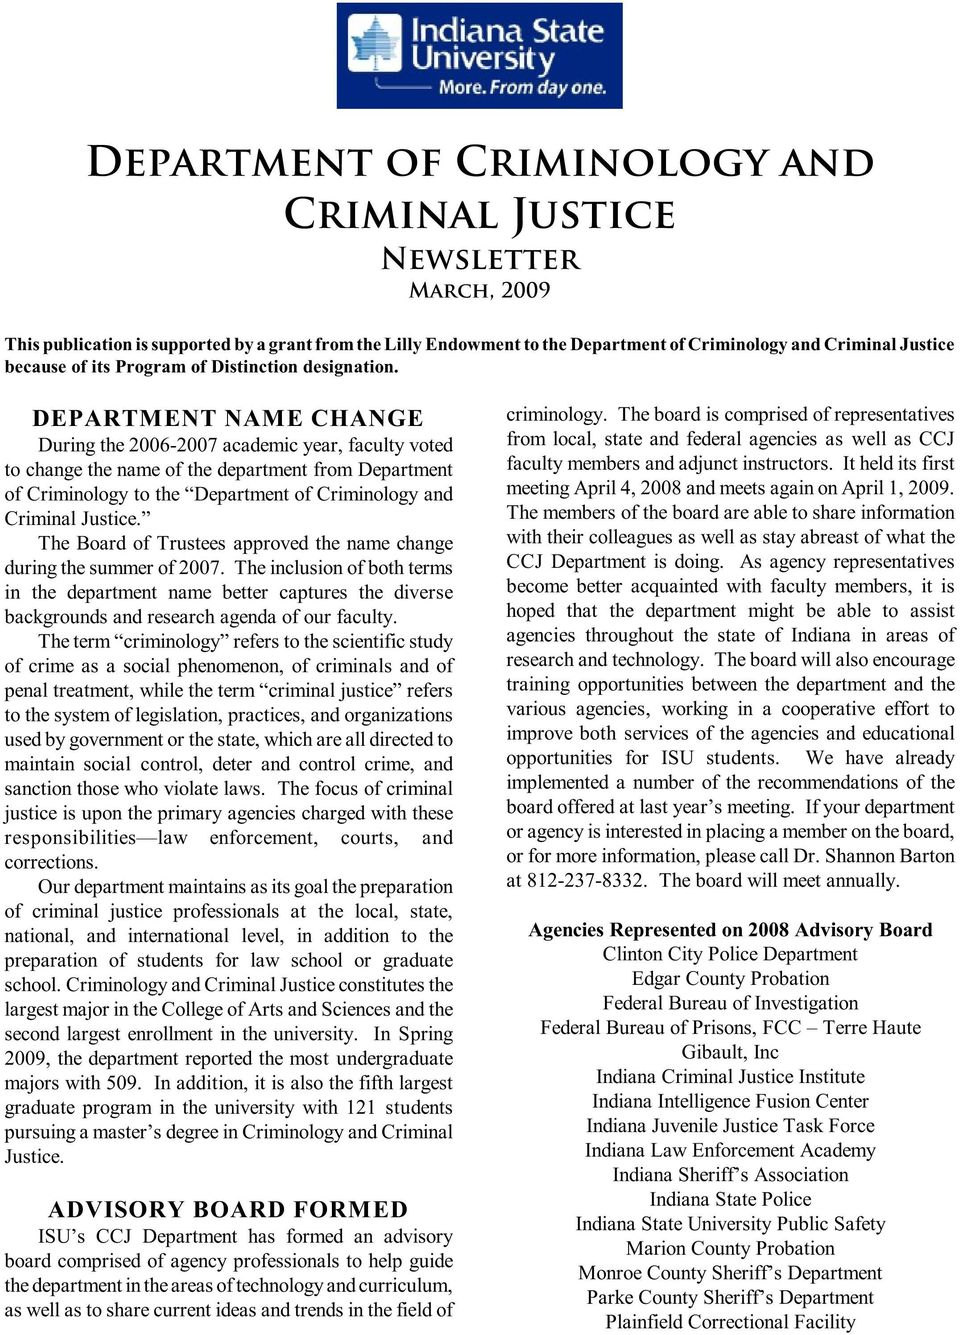 DEPARTMENT NAME CHANGE During the 2006-2007 academic year, faculty voted to change the name of the department from Department of Criminology to the Department of Criminology and Criminal Justice.